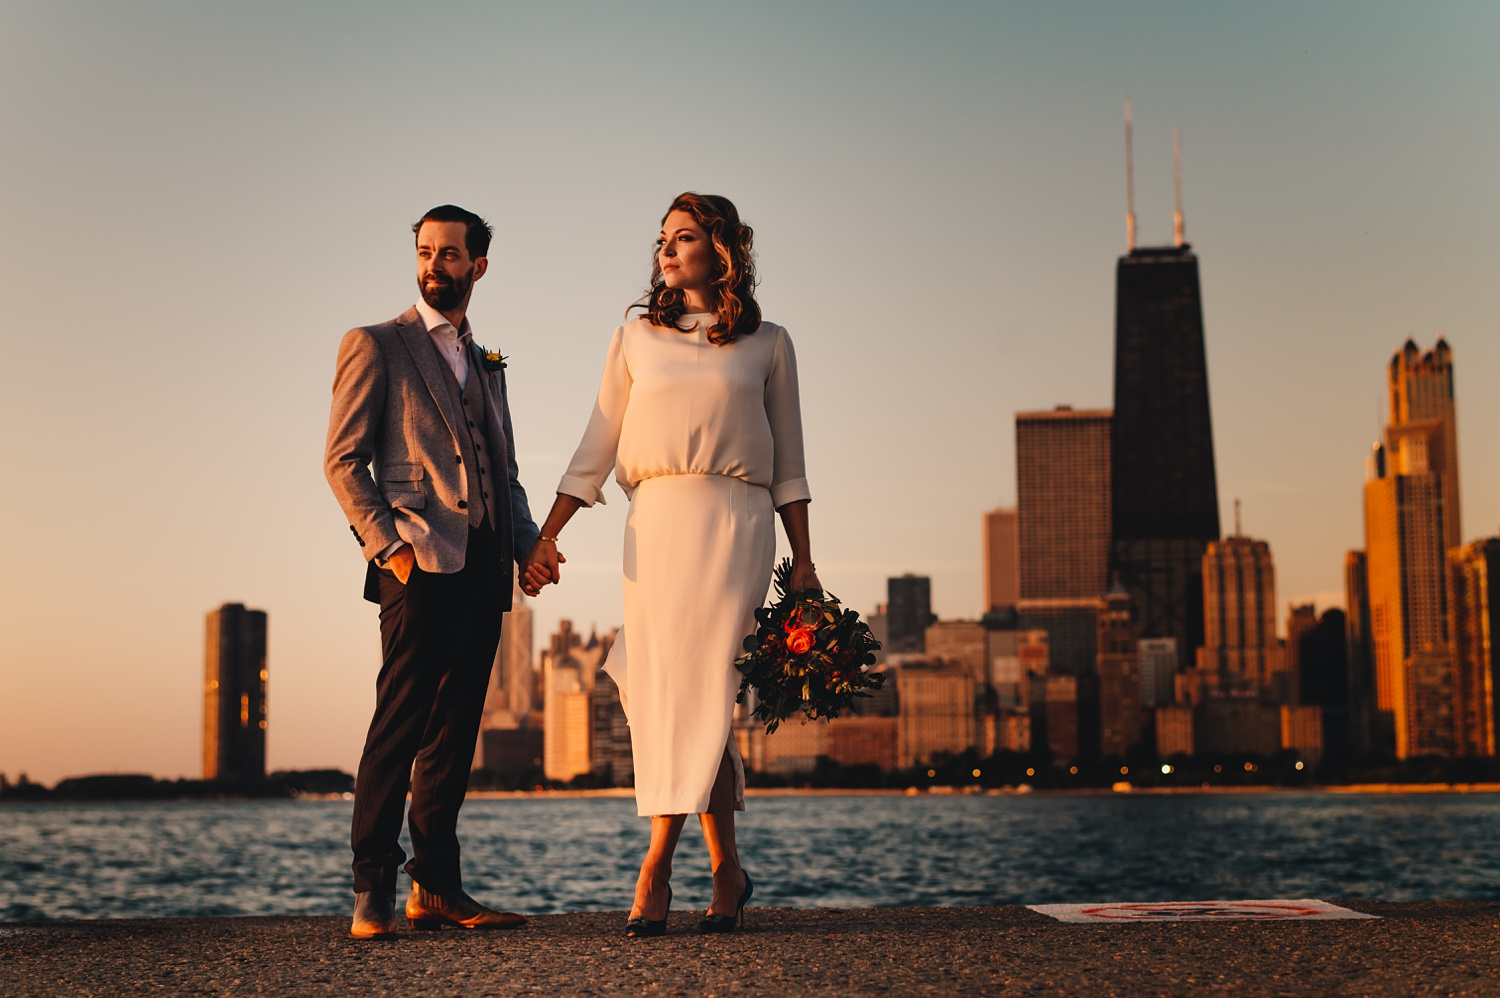 Sunrise Chicago Wedding - The Adamkovi, bride and groom creative portraits, skyline, north avenue beach